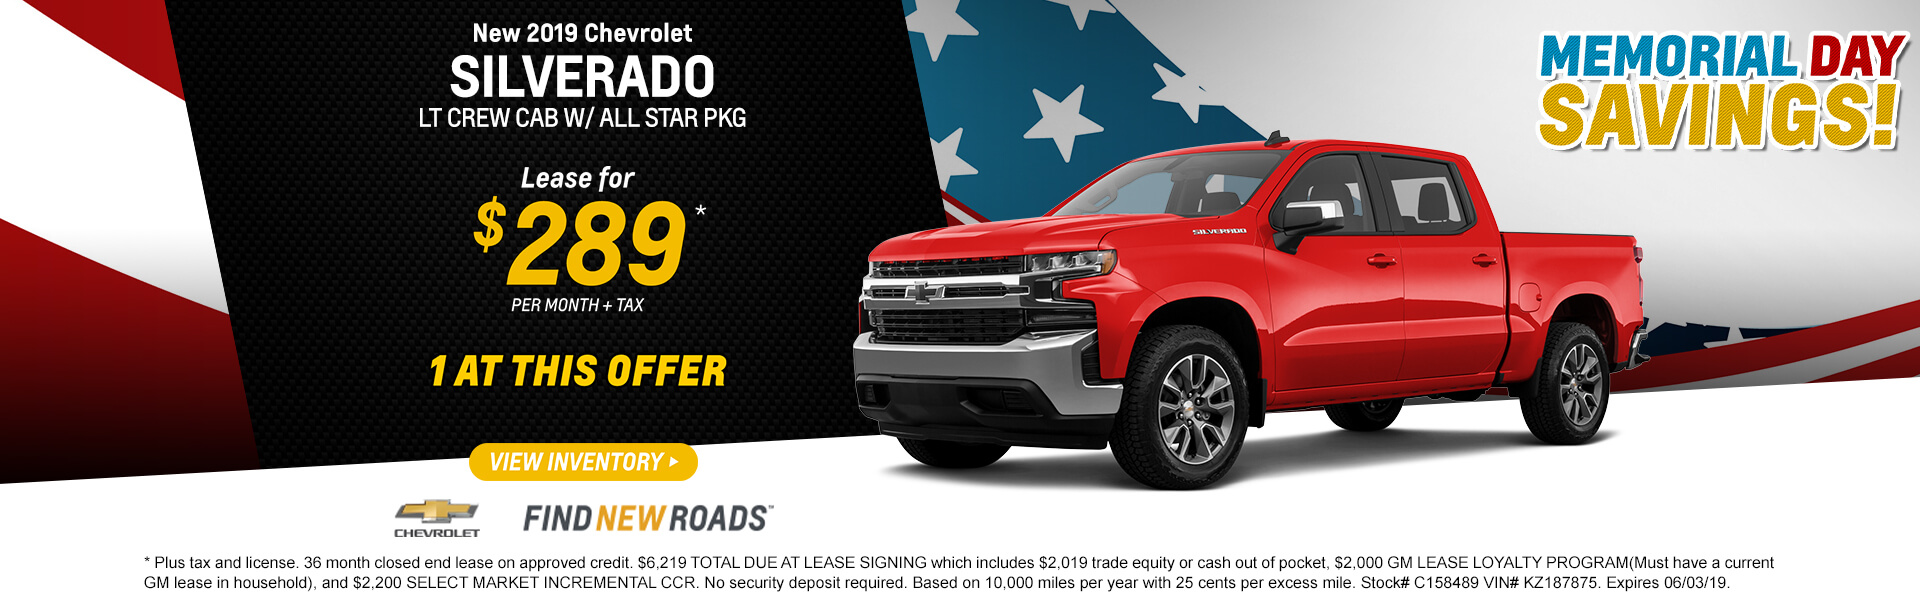 2019 CHEVROLET SILVERADO LT CREW CAB W/ ALL STAR PKG  LEASE for $289* + tax per month  1 at this offer  * Plus tax and license. 36 month closed end lease on approved credit. $6,219 TOTAL DUE AT LEASE SIGNING which includes $2,019 trade equity or cash out of pocket, $2,000 GM LEASE LOYALTY PROGRAM(Must have a current GM lease in household), and $2,200 SELECT MARKET INCREMENTAL CCR. No security deposit required. Based on 10,000 miles per year with 25 cents per excess mile. Stock# C158489 VIN# KZ187875. Expires 06/03/19.